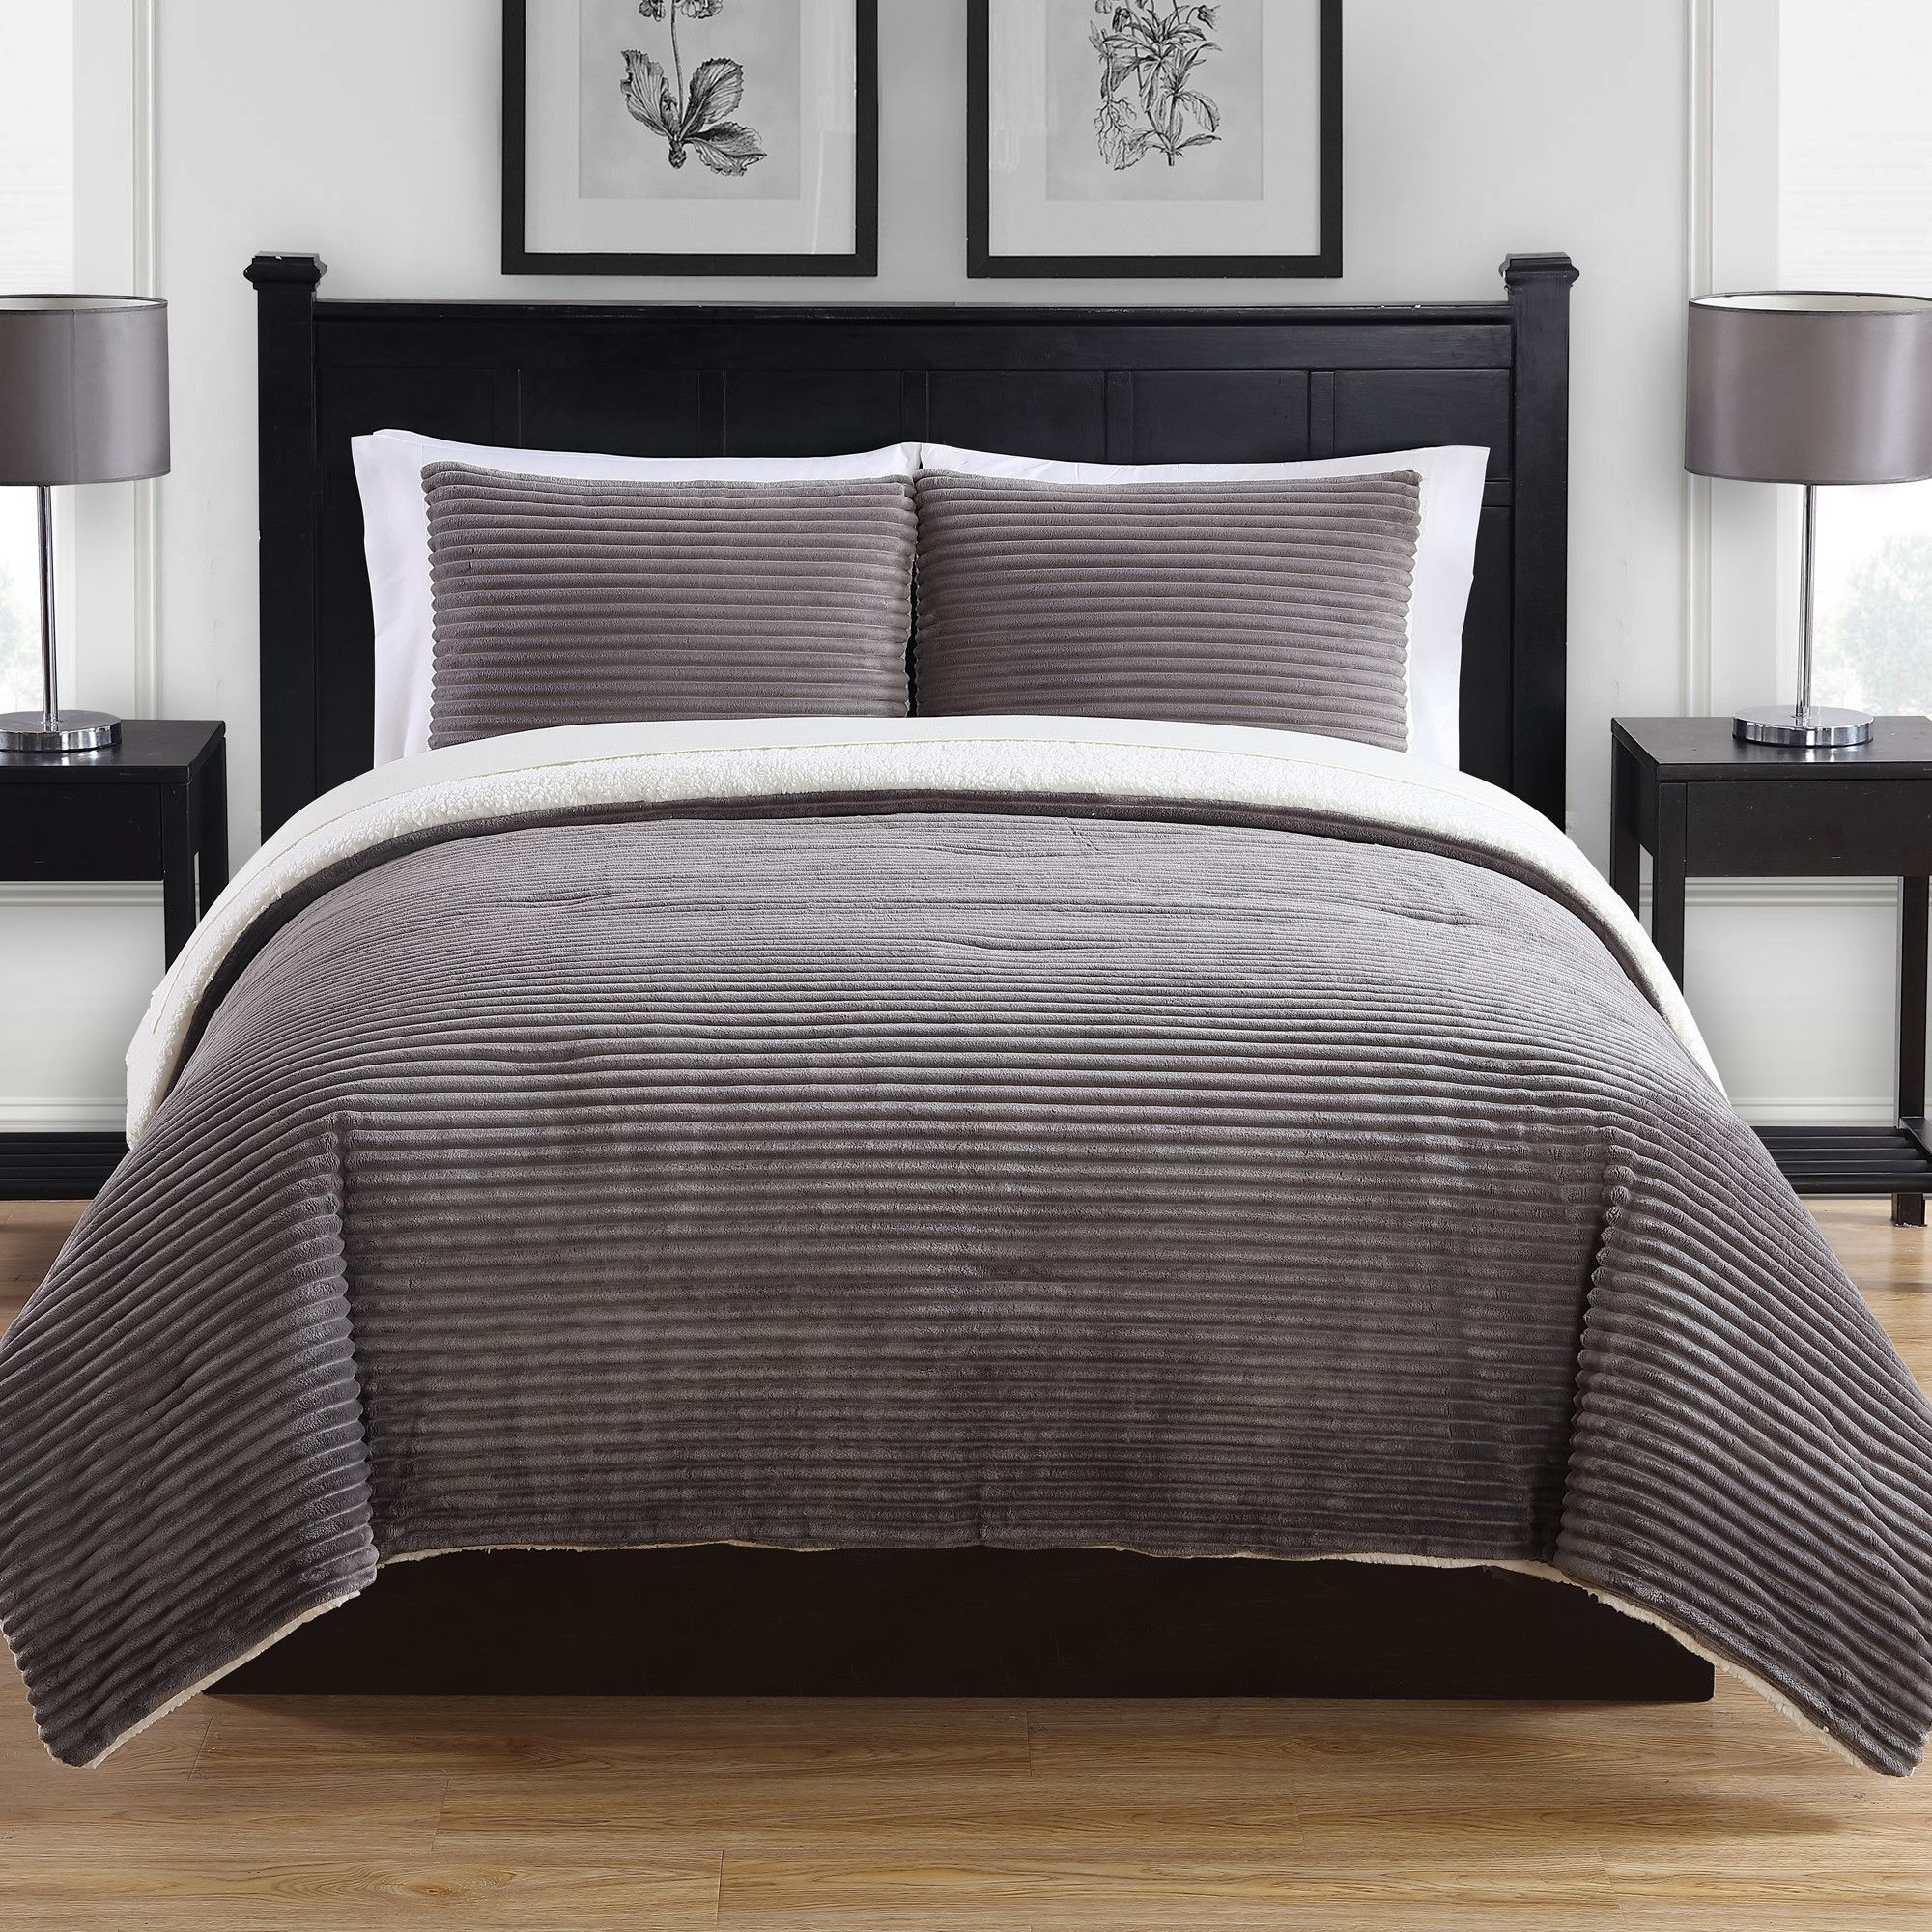 You Ll Love The Ribbed Plush 3 Piece Comforter Set At Allmodern With Great Deals On Modern Bedroom Products And Free Comforter Sets Bedding Sets Bed Spreads